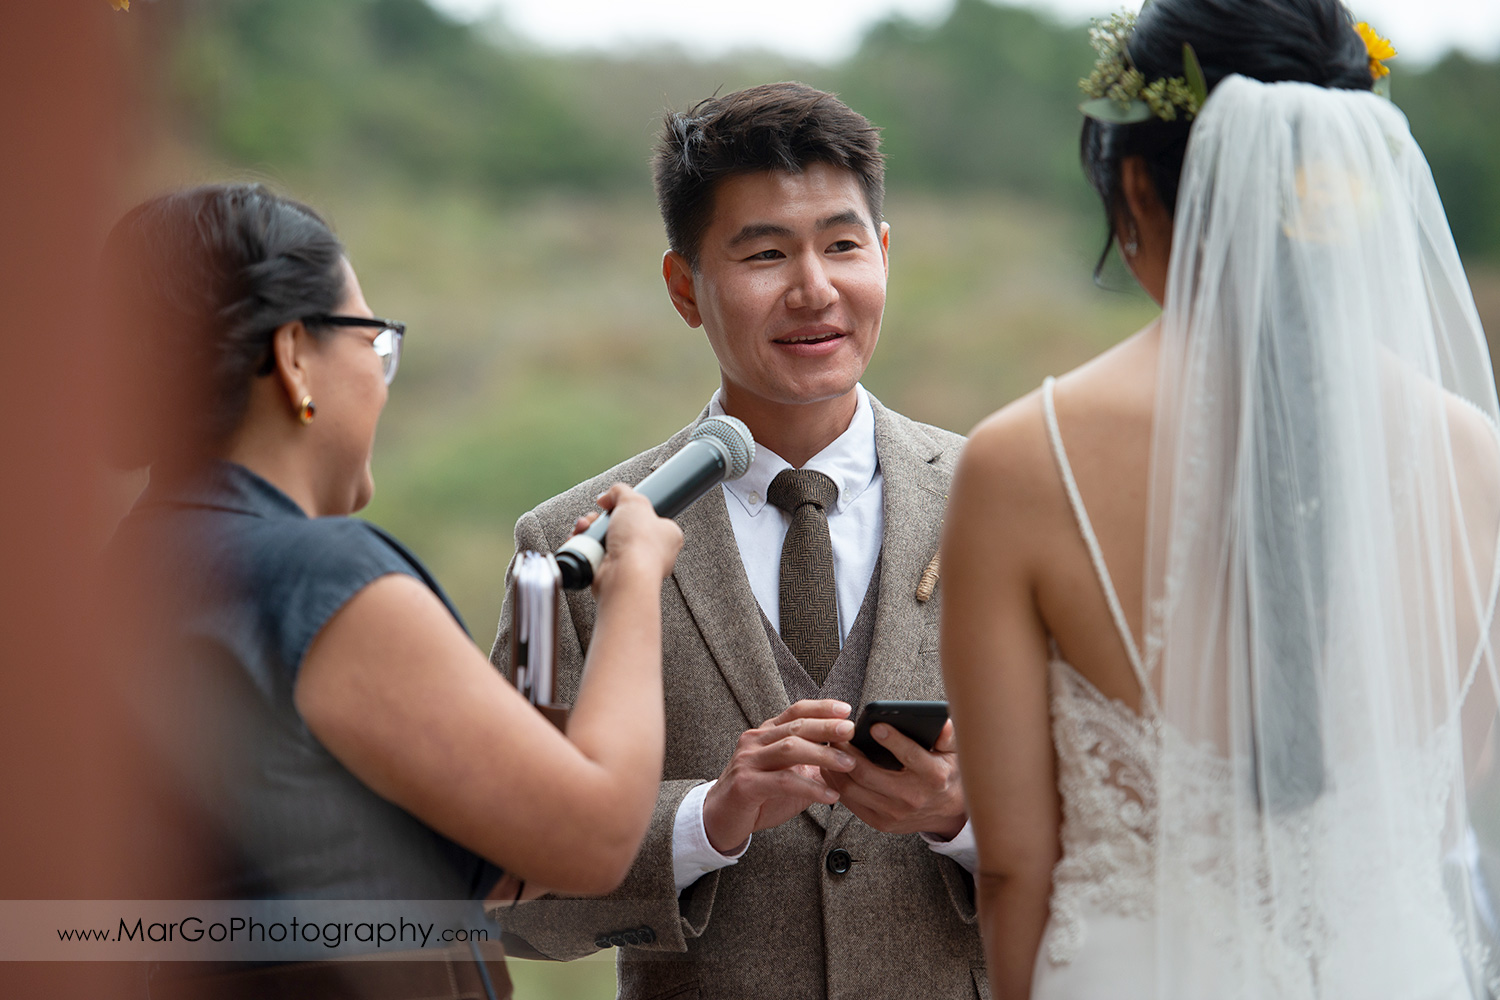 groom reading vows during wedding ceremony at Long Branch Saloon & Farms in Half Moon Bay